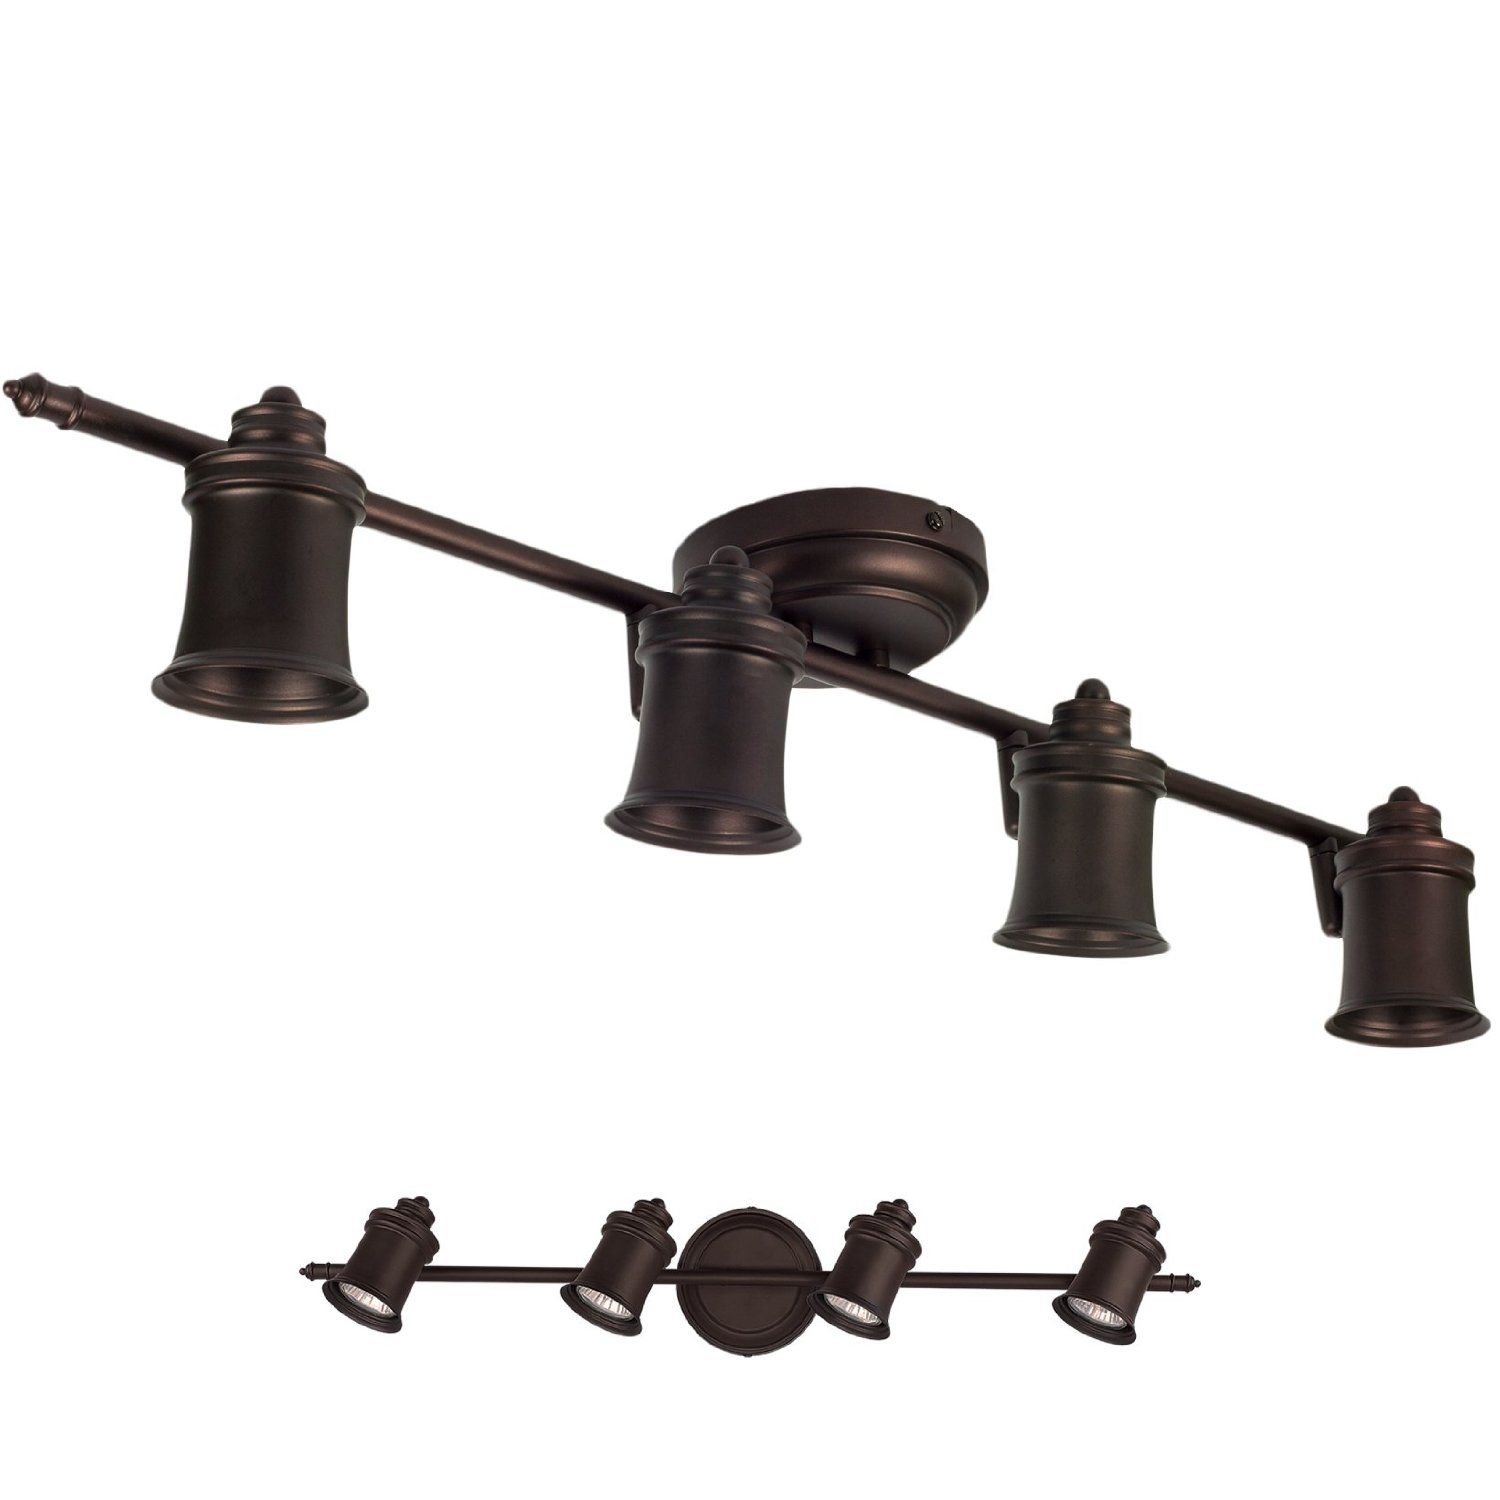 Wall Mount Track Lighting Oil Rubbed Bronze 4 Light Track Lighting Wall And Ceiling